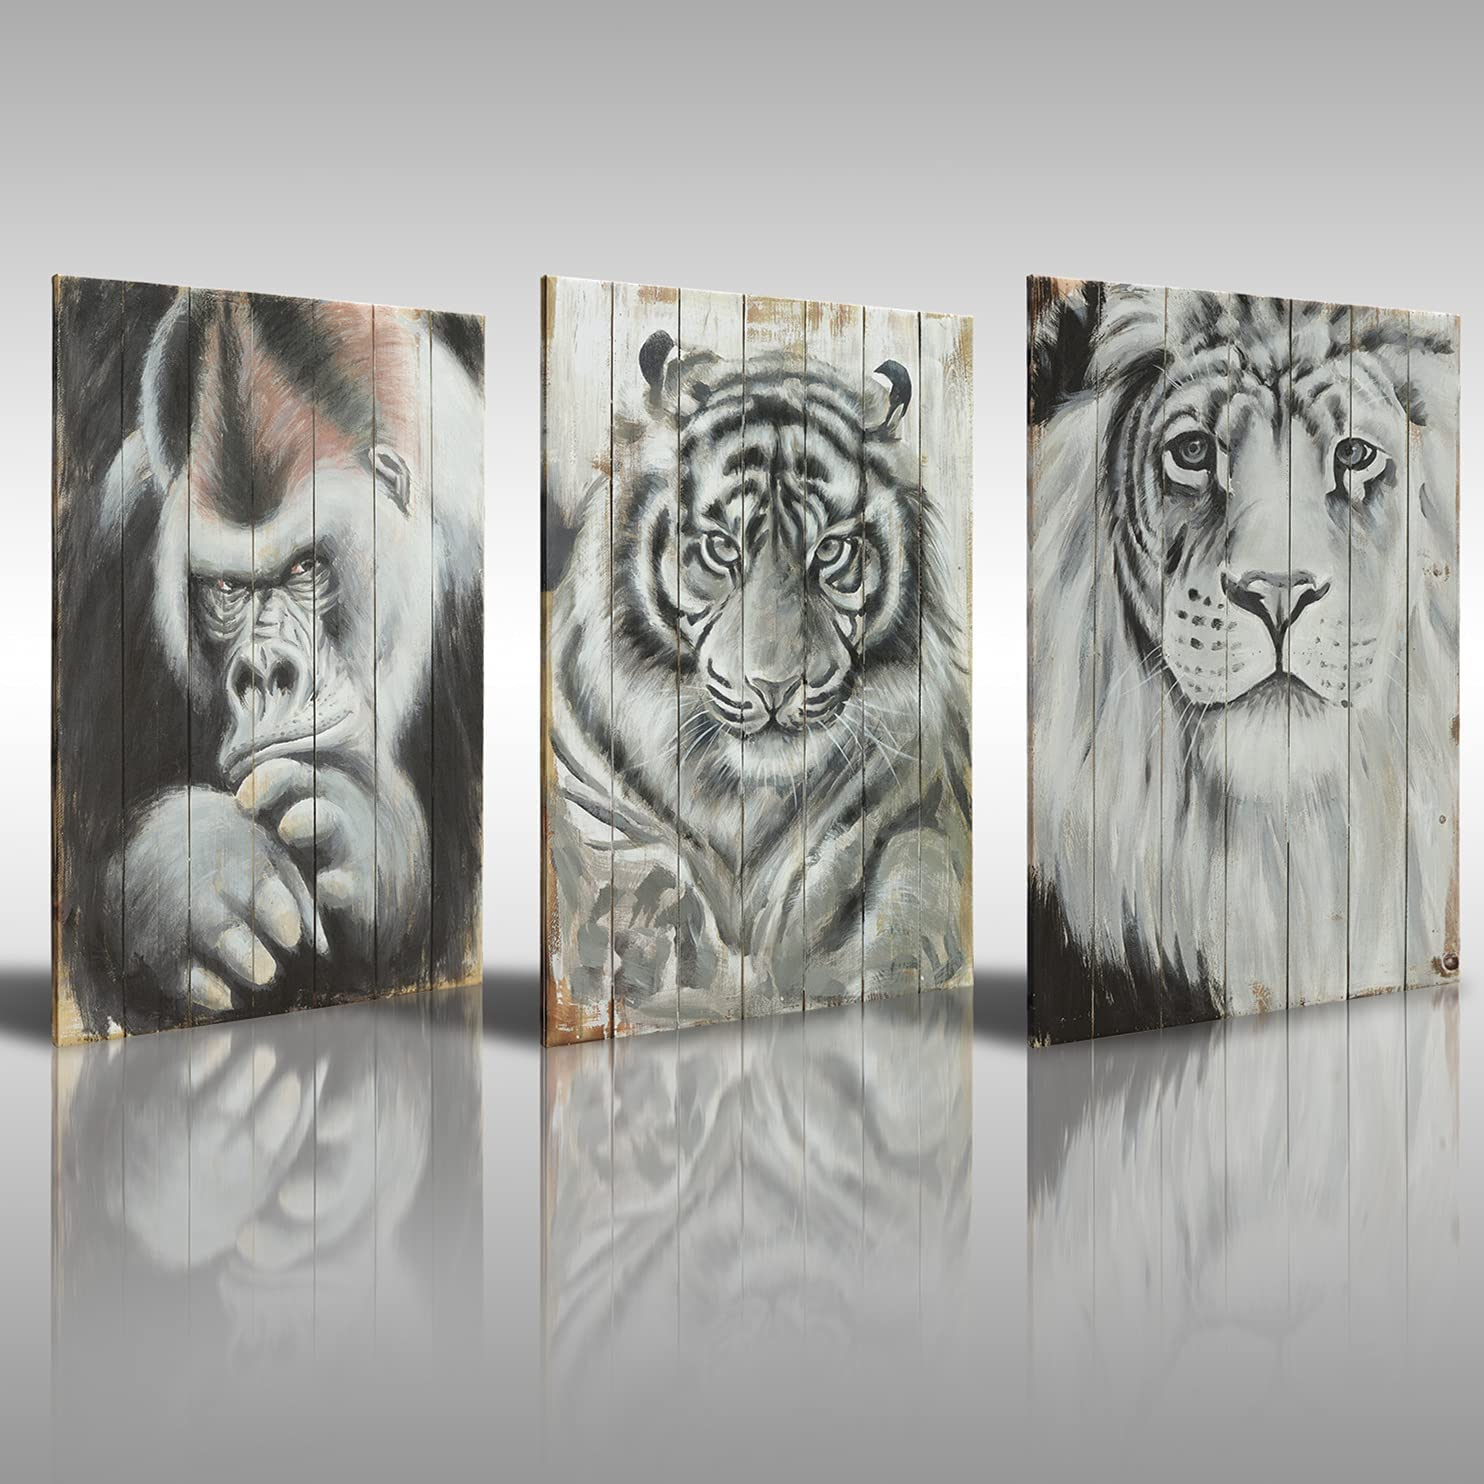 Kitchen Decor Canvas Wall Art Tiger Lion Orangutan Pictures Large Framed Wall Decor Pattern Prints for Living Room Kitchen Bathroom Dining Room Restroom Office Decorations (16x24x3)